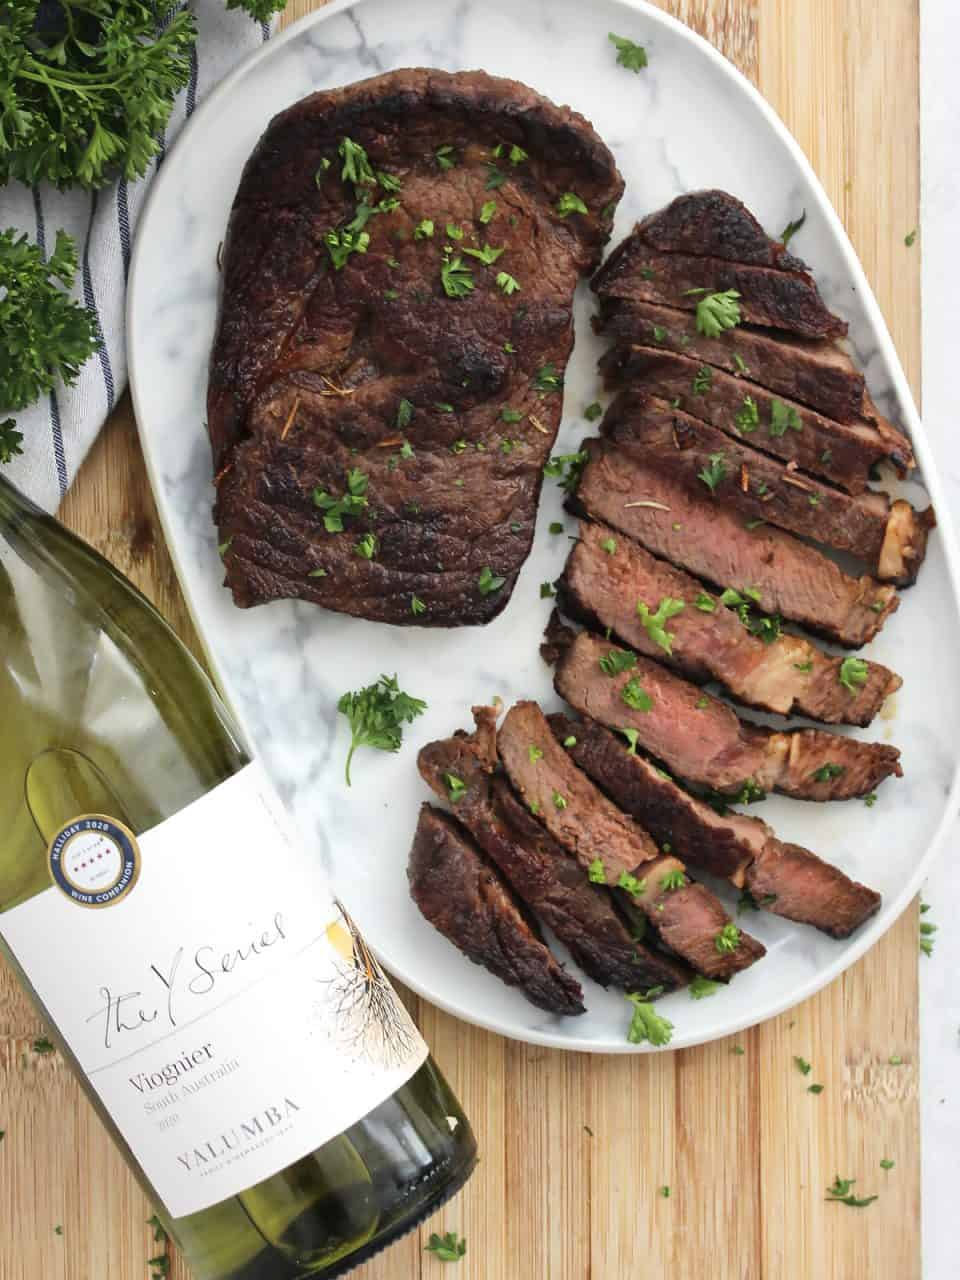 Sliced ribeye steak on a white serving plate next to a bottle of wine.